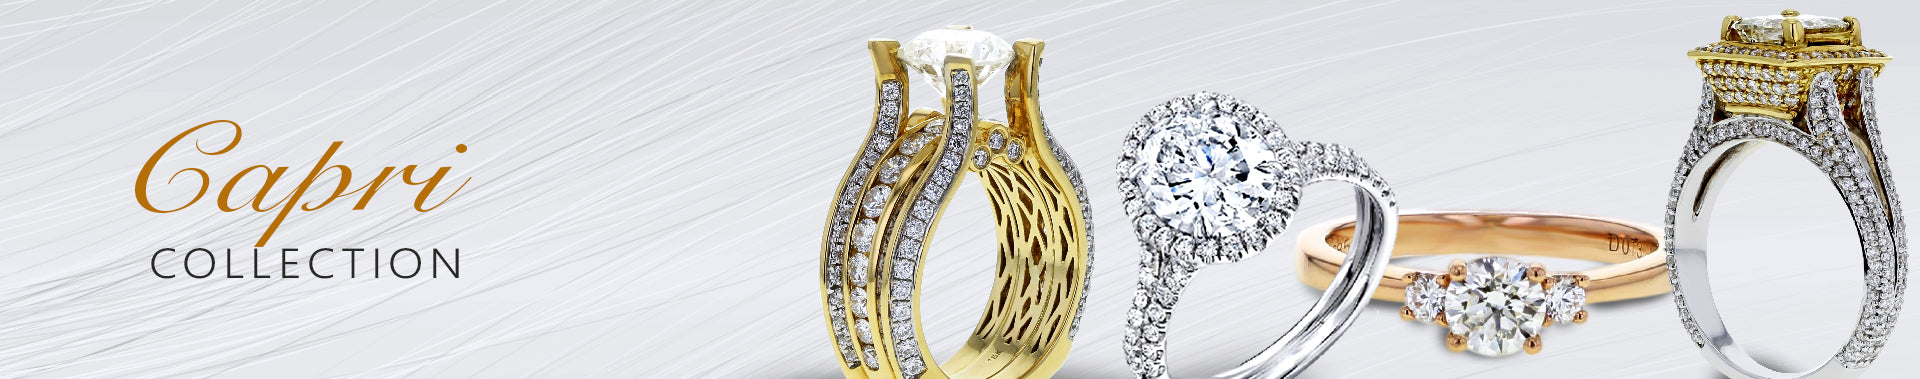 Capri Engagement Rings Collection